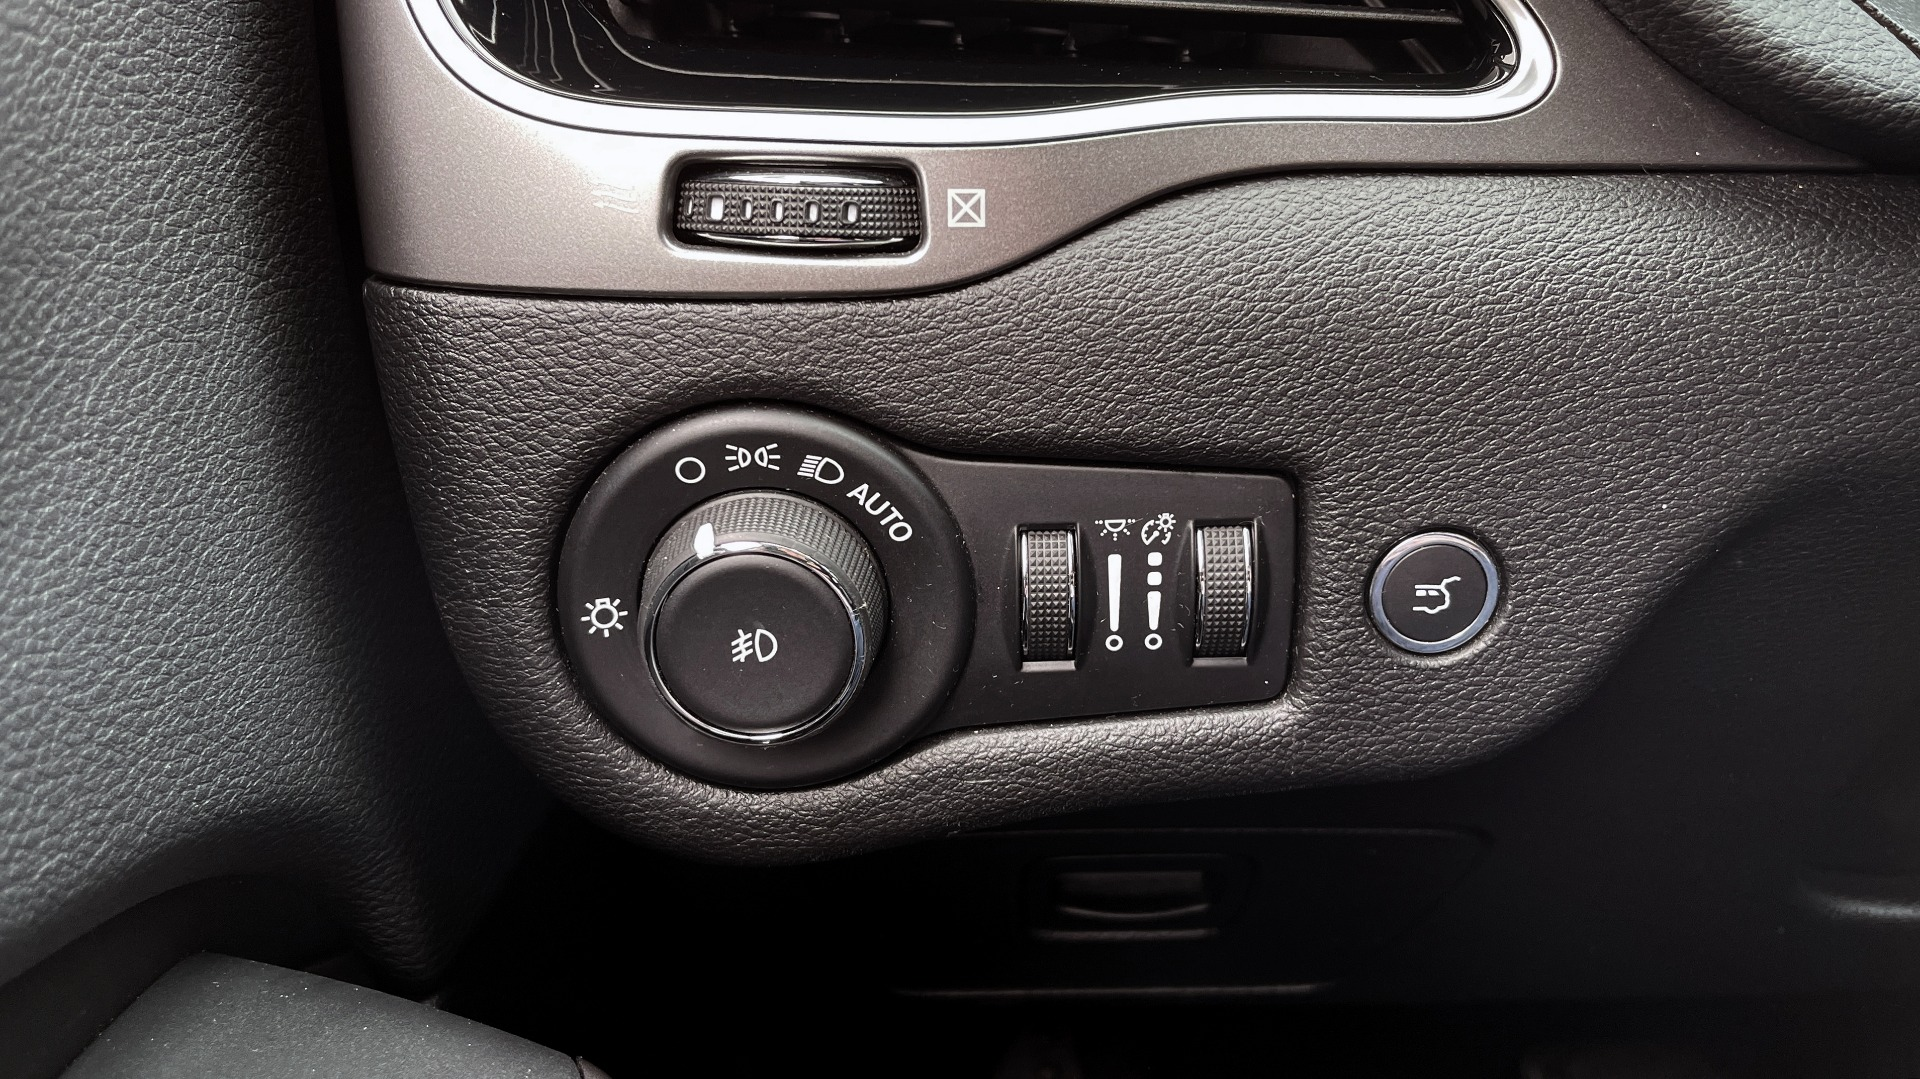 Used 2019 Jeep CHEROKEE LIMITED 2.4L / FWD / APPLE CARPLAY / KEYLESS-GO / REARVIEW for sale $24,395 at Formula Imports in Charlotte NC 28227 29